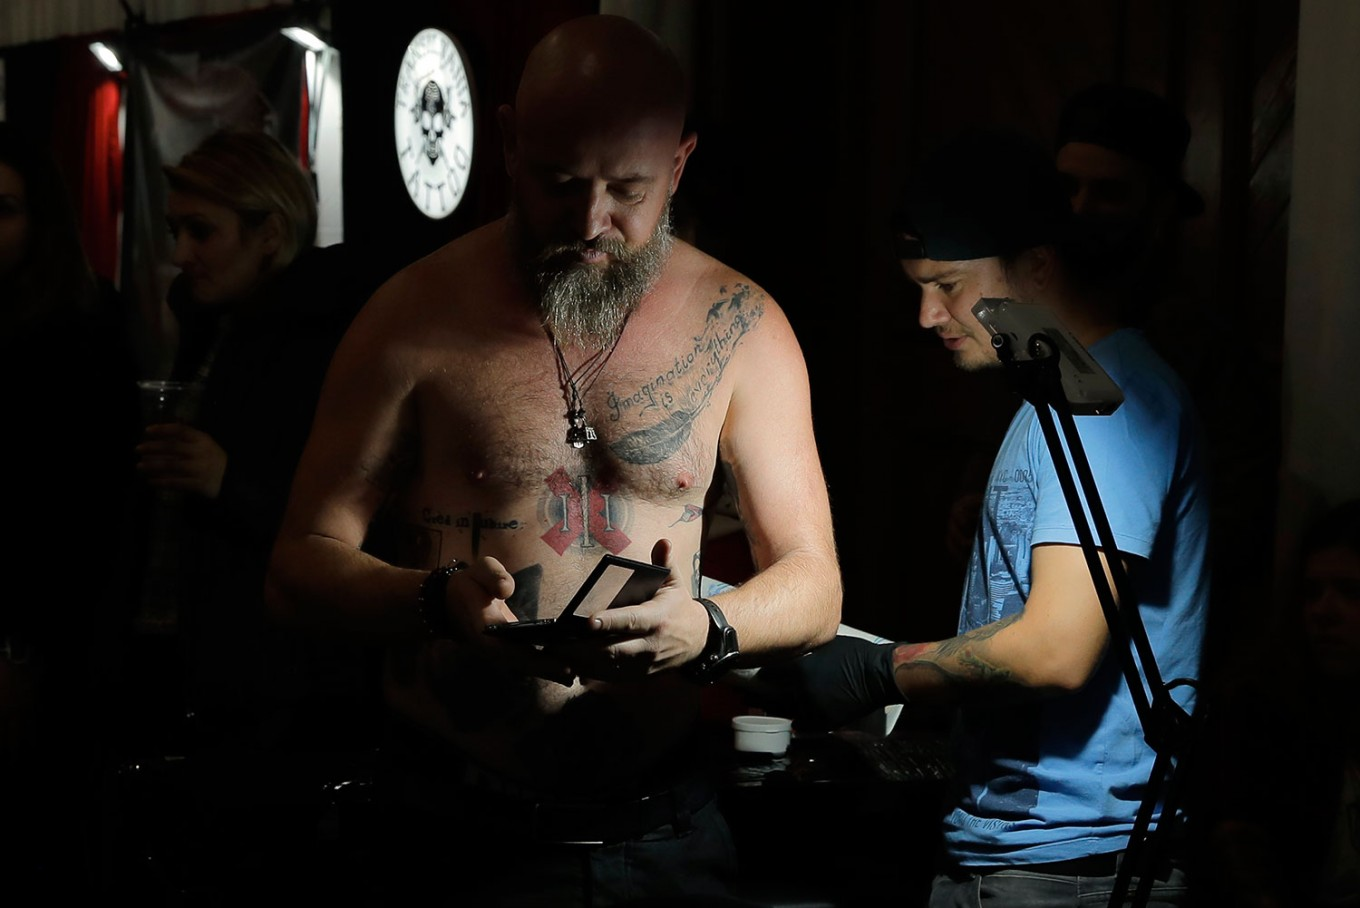 In this picture taken on Sunday, Oct. 16, 2016, a man gets a tattoo during the International Tattoo Convention Bucharest 2016 in Bucharest, Romania. AP Photo/Vadim Ghirda